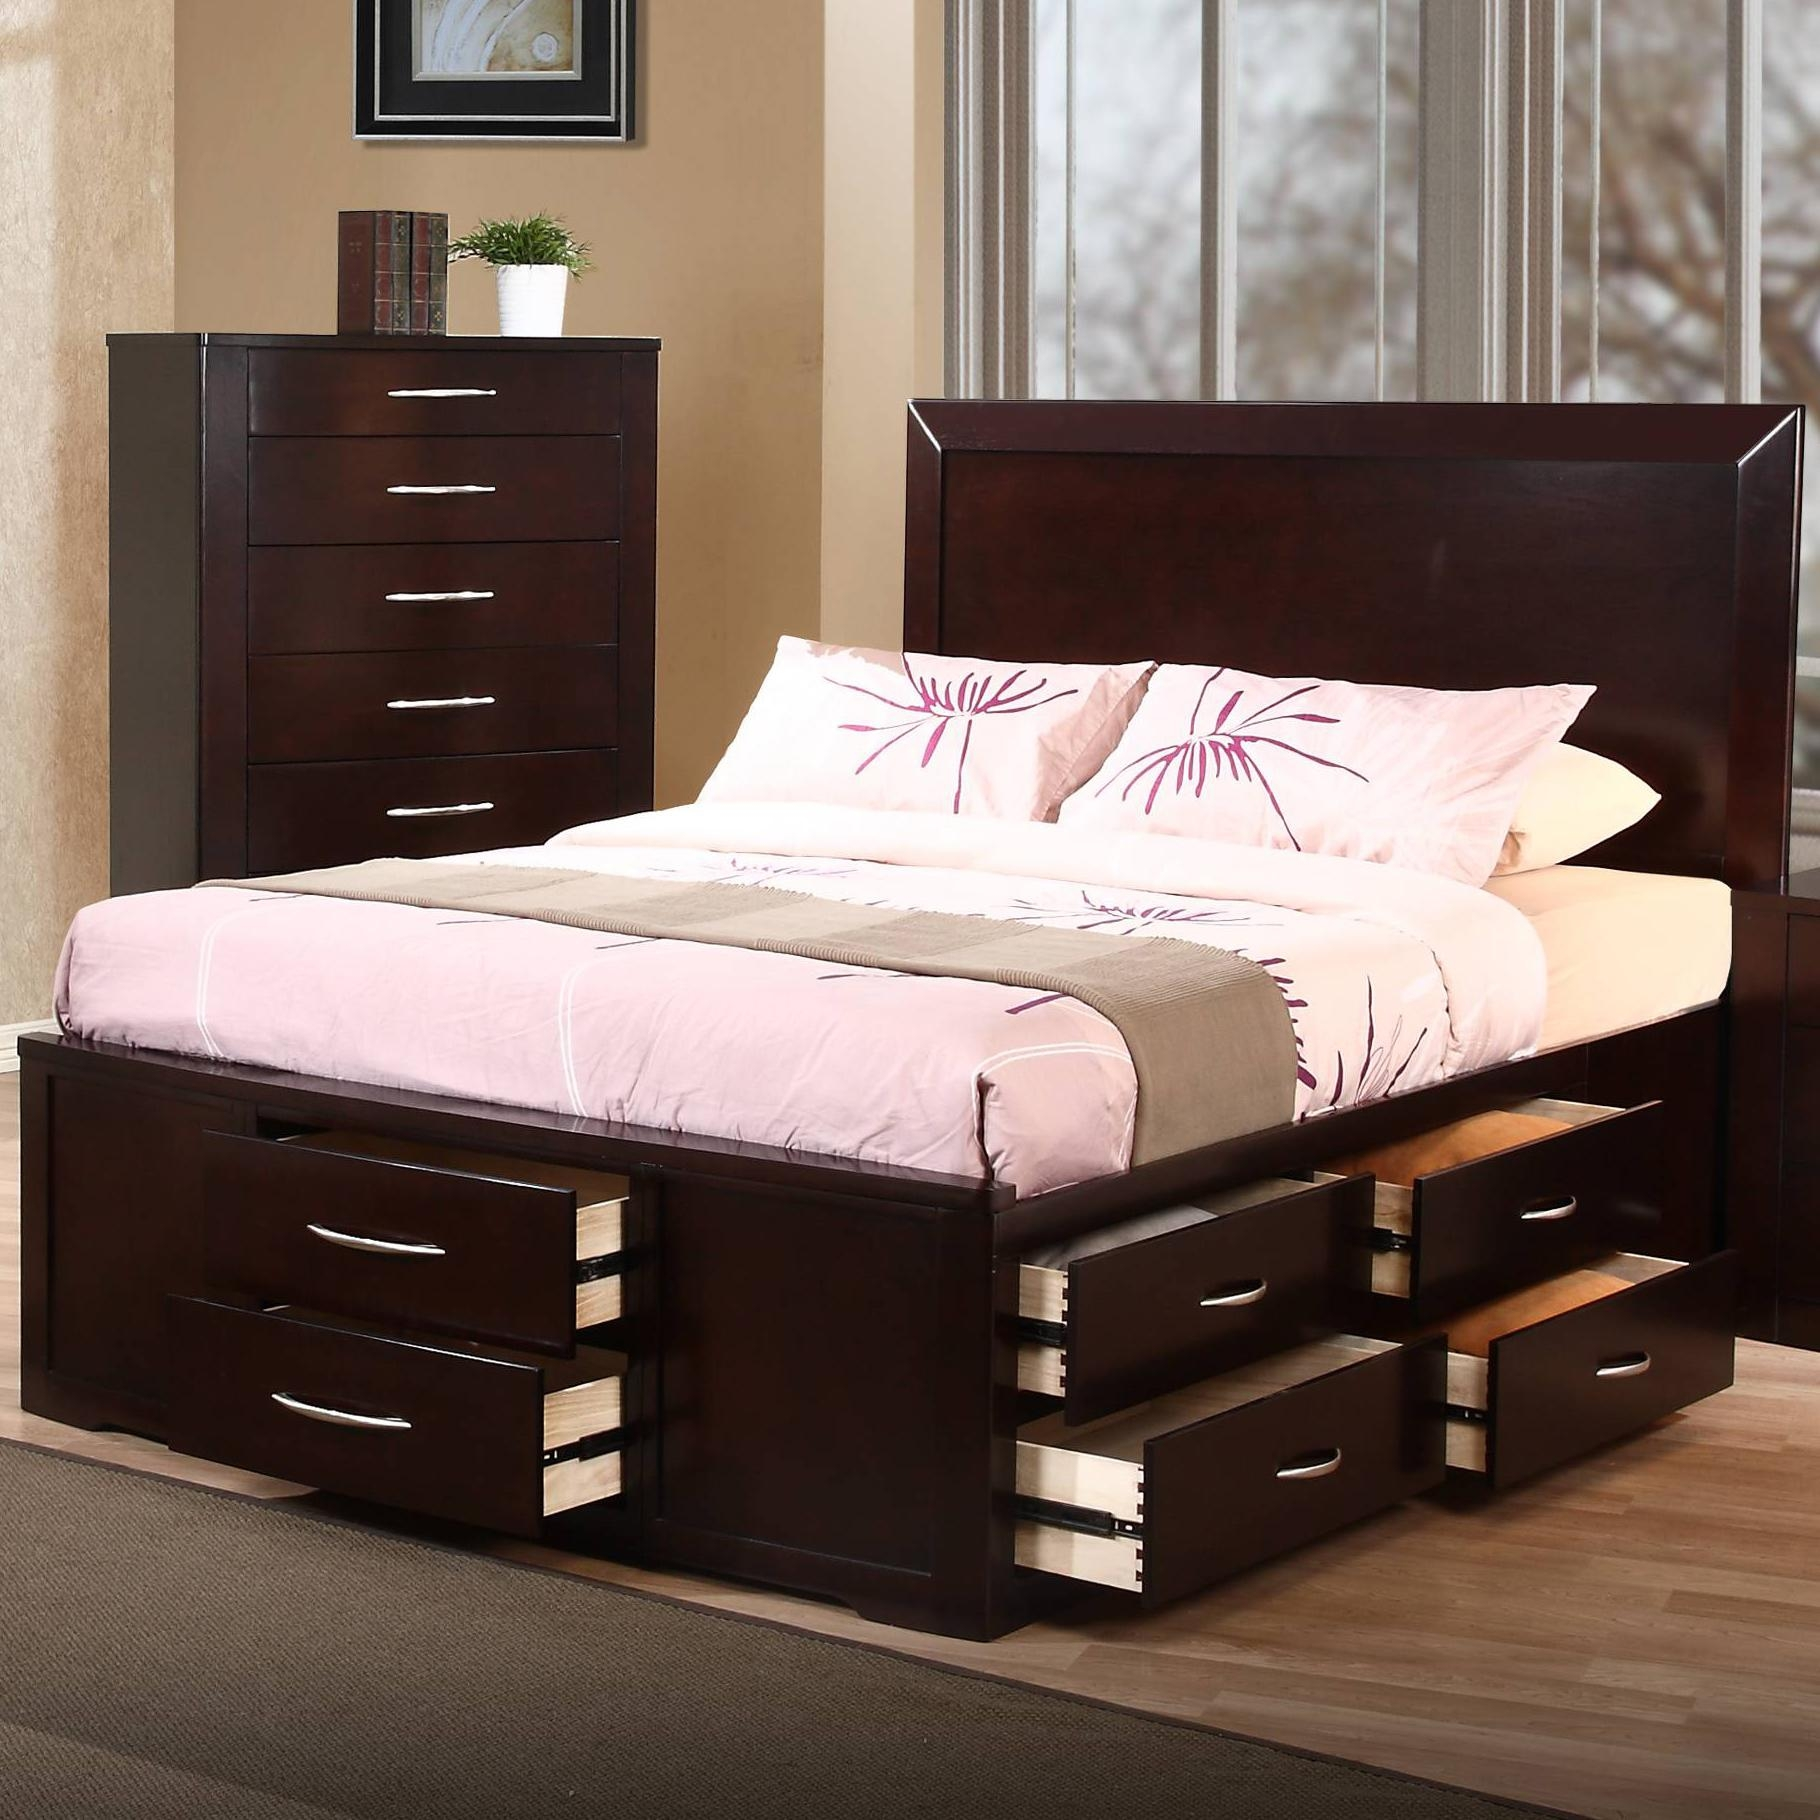 Non Toxic Bed Frame Bed Frames Ideas